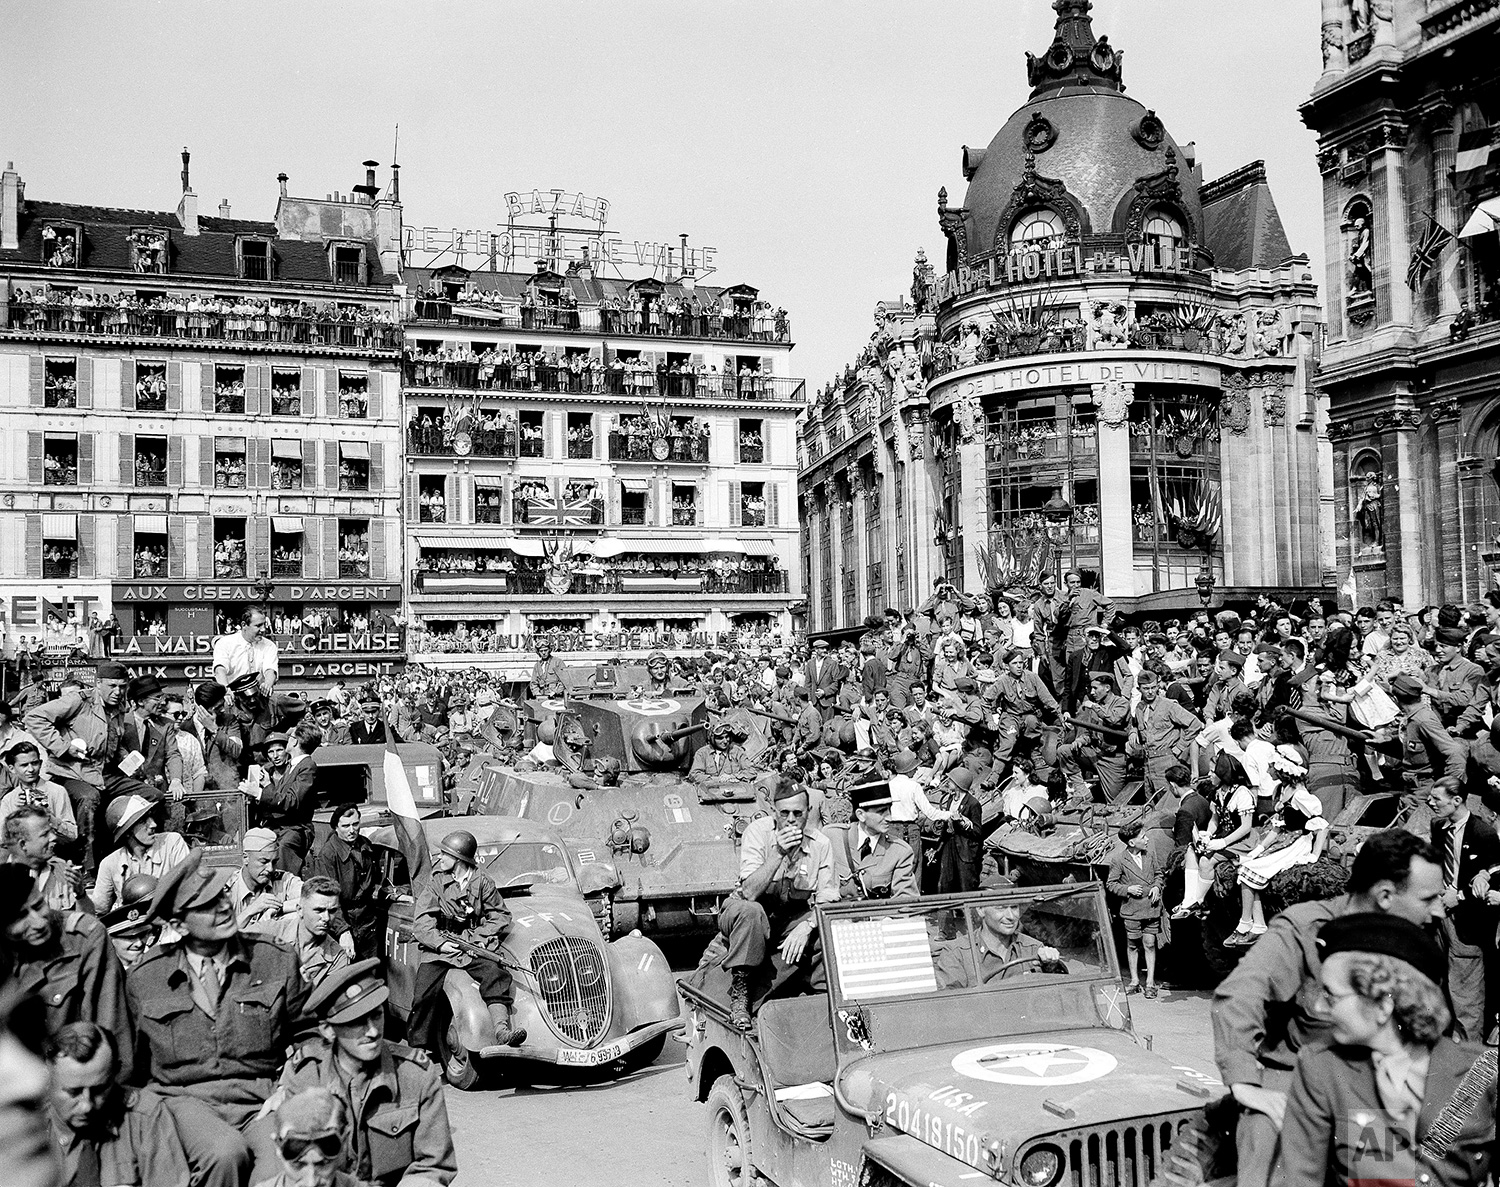 Thousands of Parisians jam the Place de l'Hotel de Ville (City Hall) in the French capital, Aug. 26, 1944, to watch the big parade for Gen. Charles de Gaulle. Other civilians peer from windows and balconies. Allied flags are displayed throughout the square. Part of the City Hall is visible at extreme right. (AP Photo/Wartime Picture Pool/Peter J. Carroll)